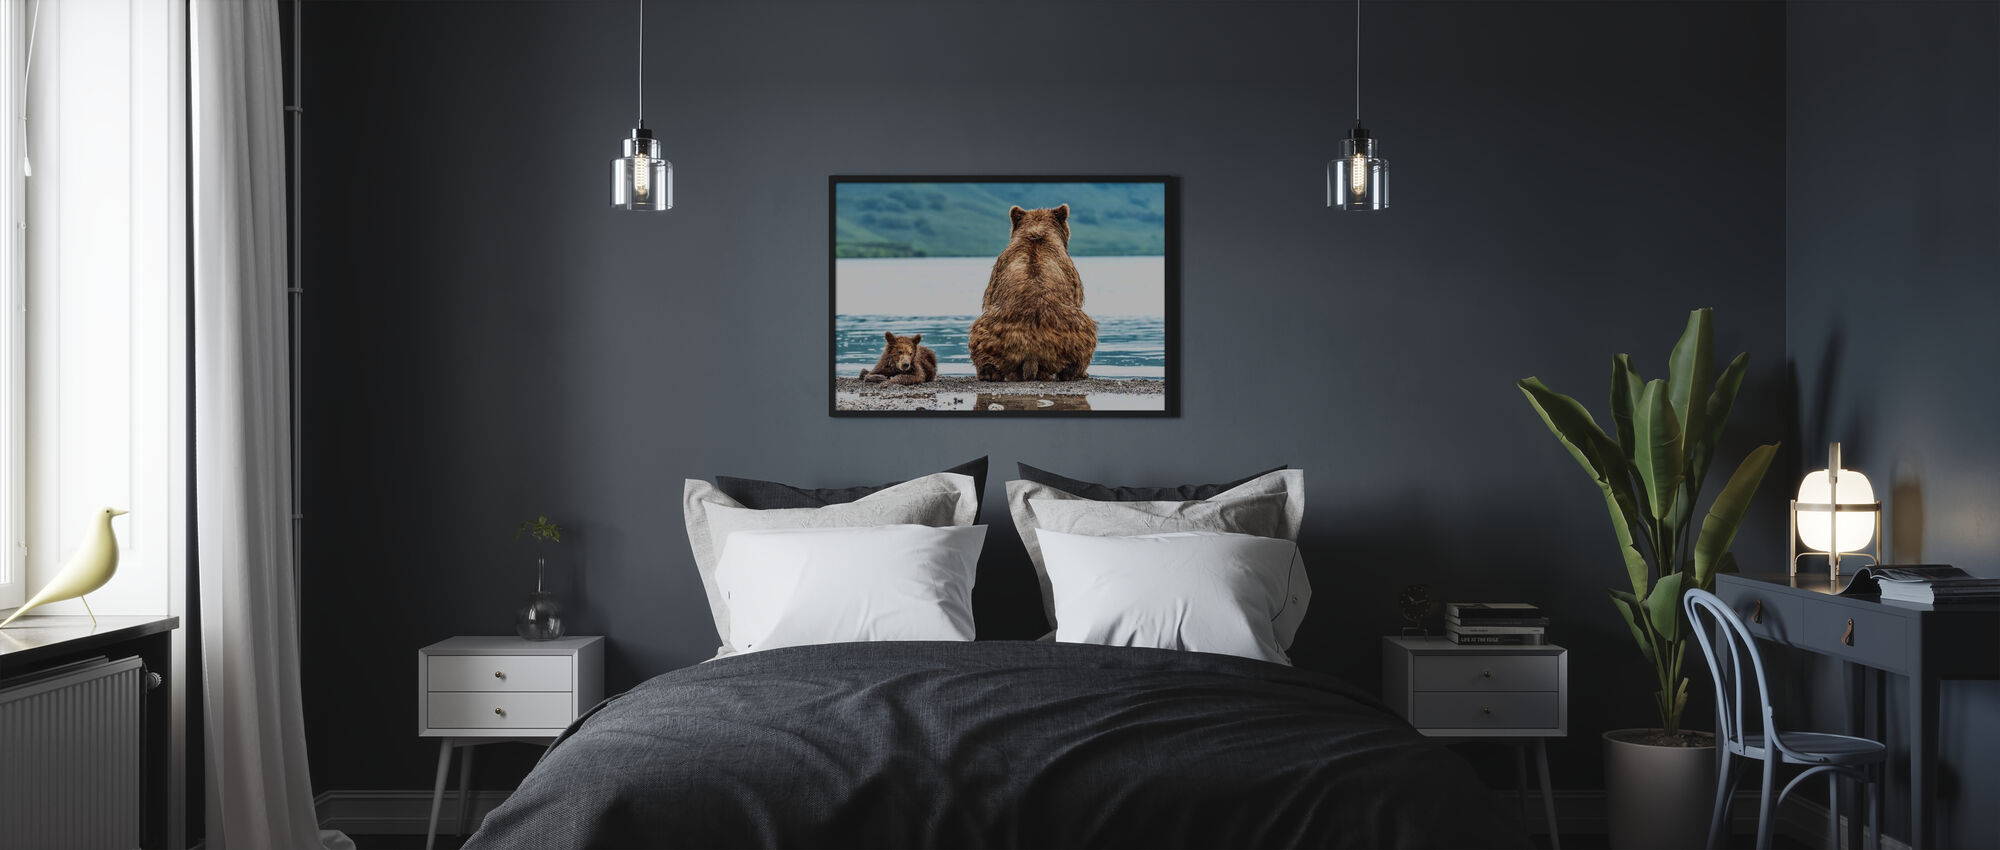 Bear and Cub - Poster - Bedroom